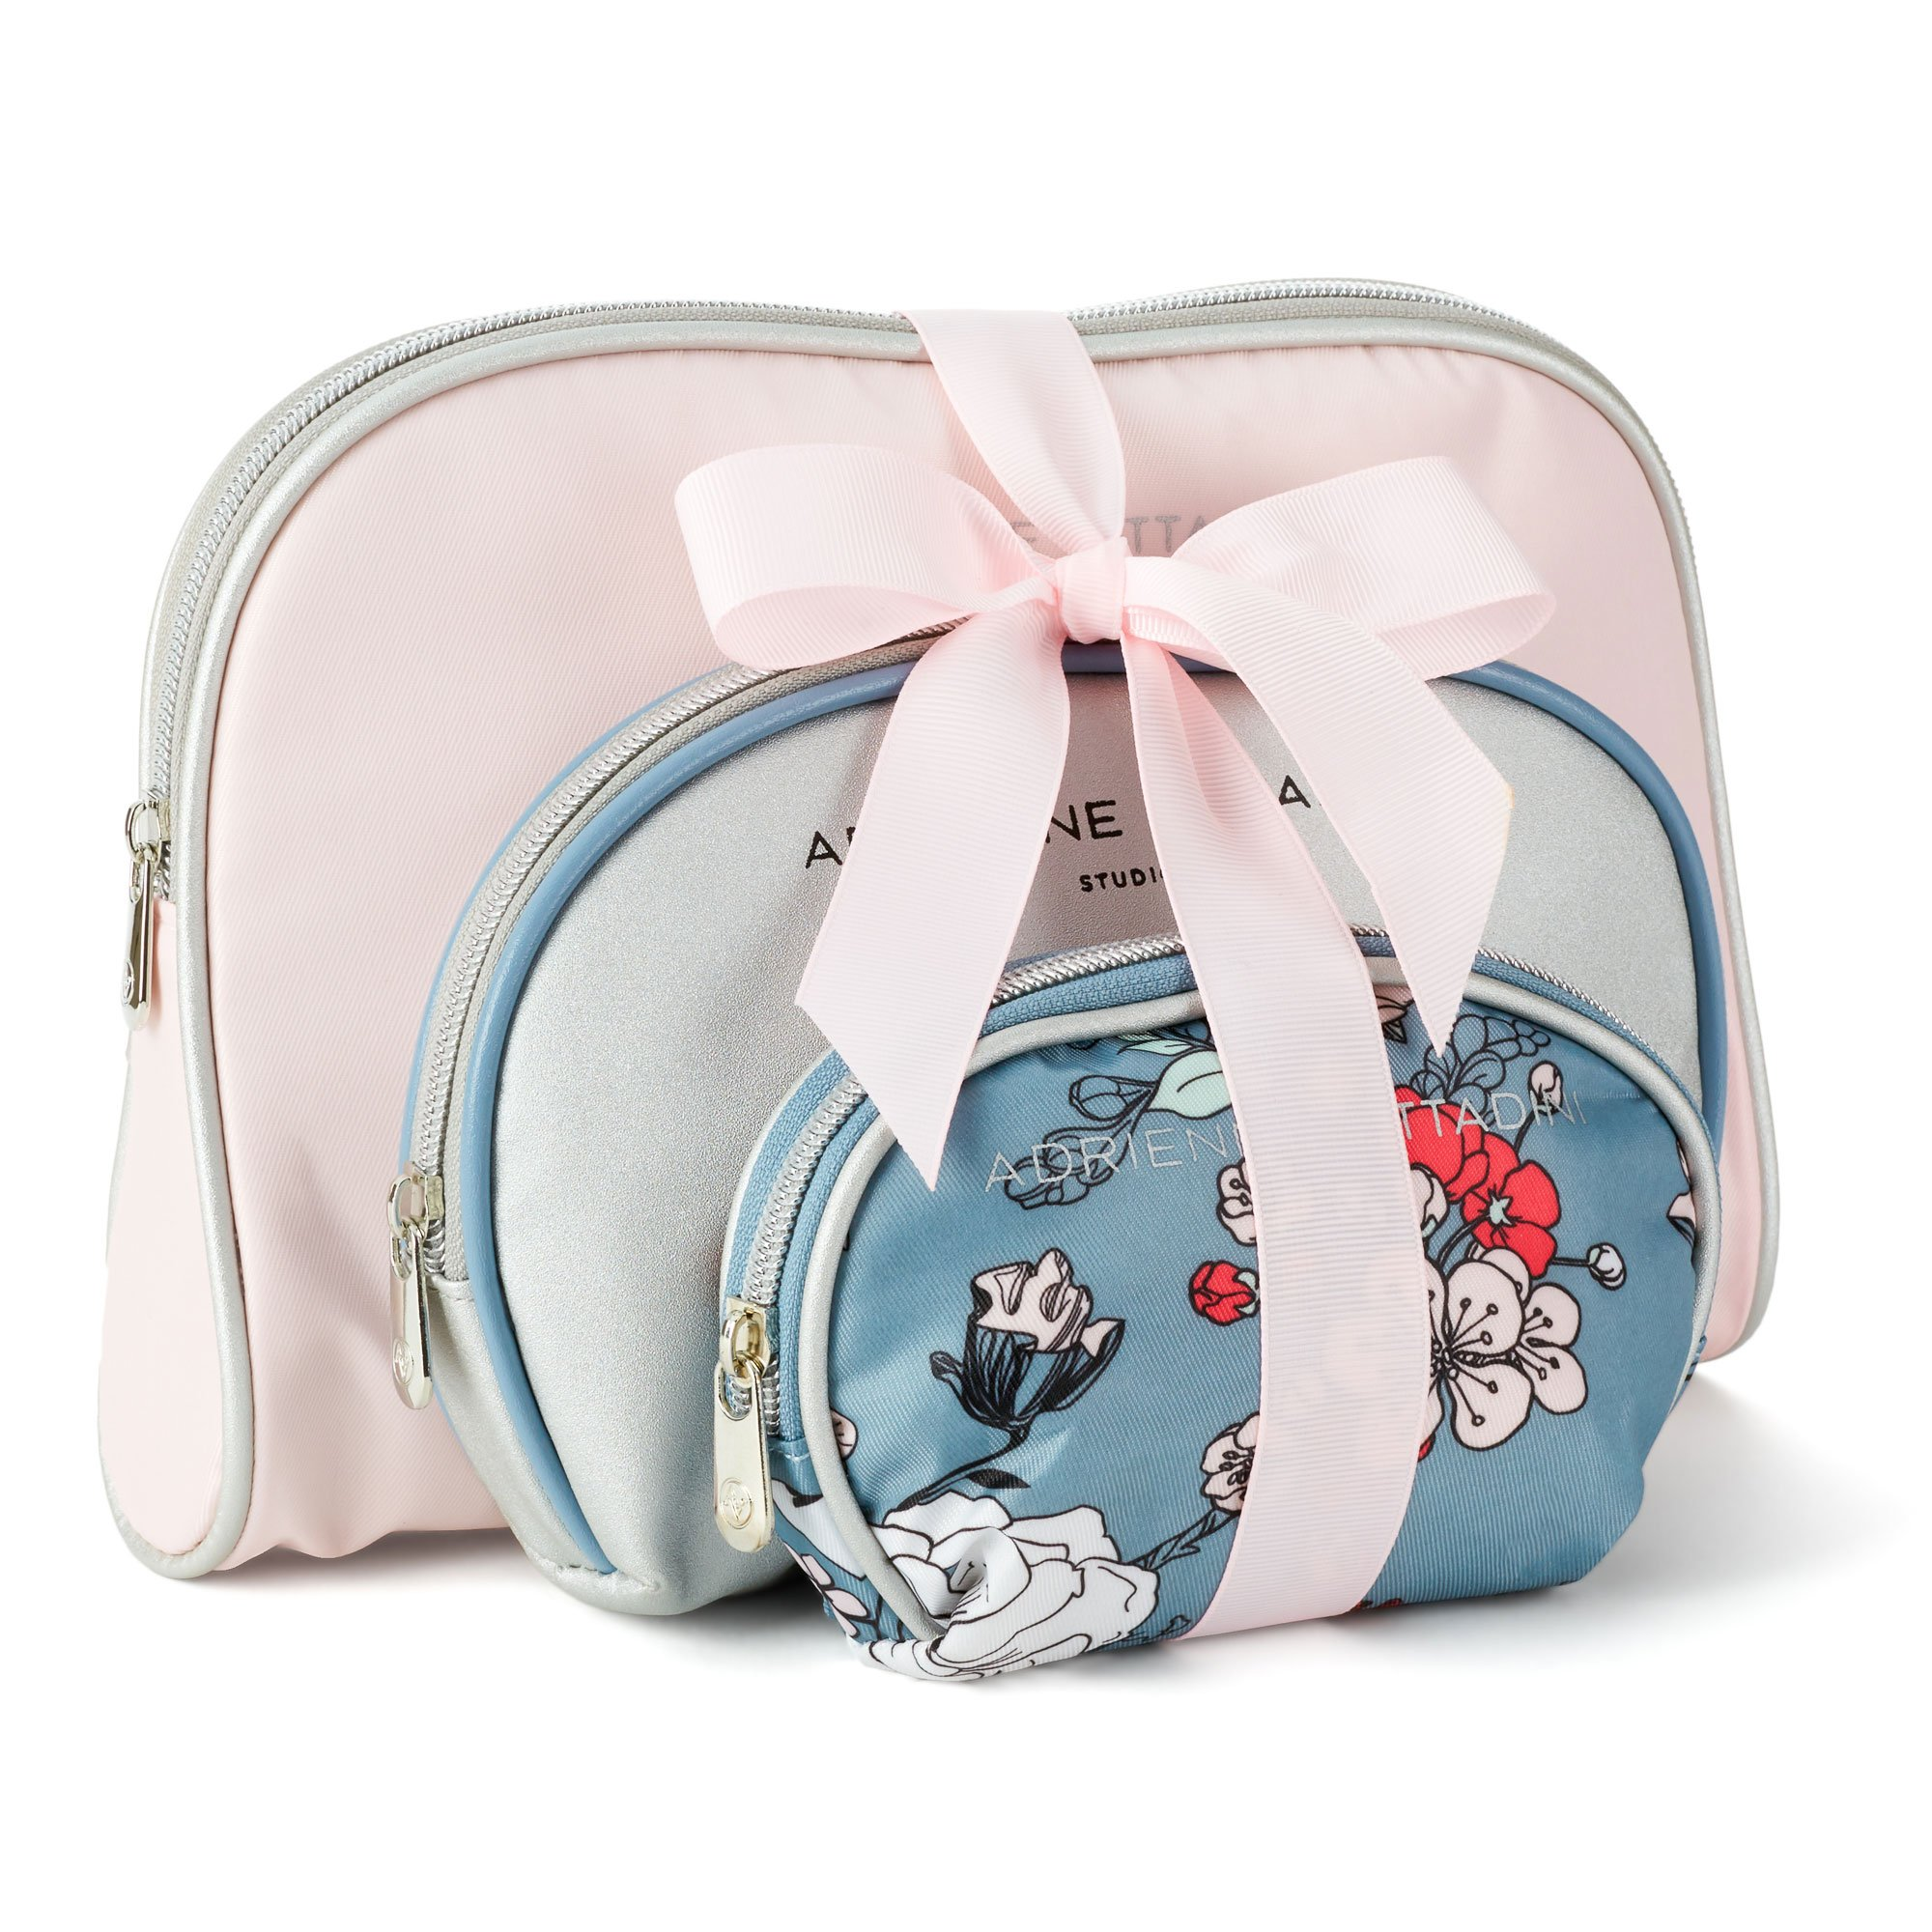 Adrienne Vittadini Cosmetic Makeup Bags: Compact Travel Toiletry Bag Set in Small, Medium and Large for Women and Girls - Pale Pink & Blue Floral